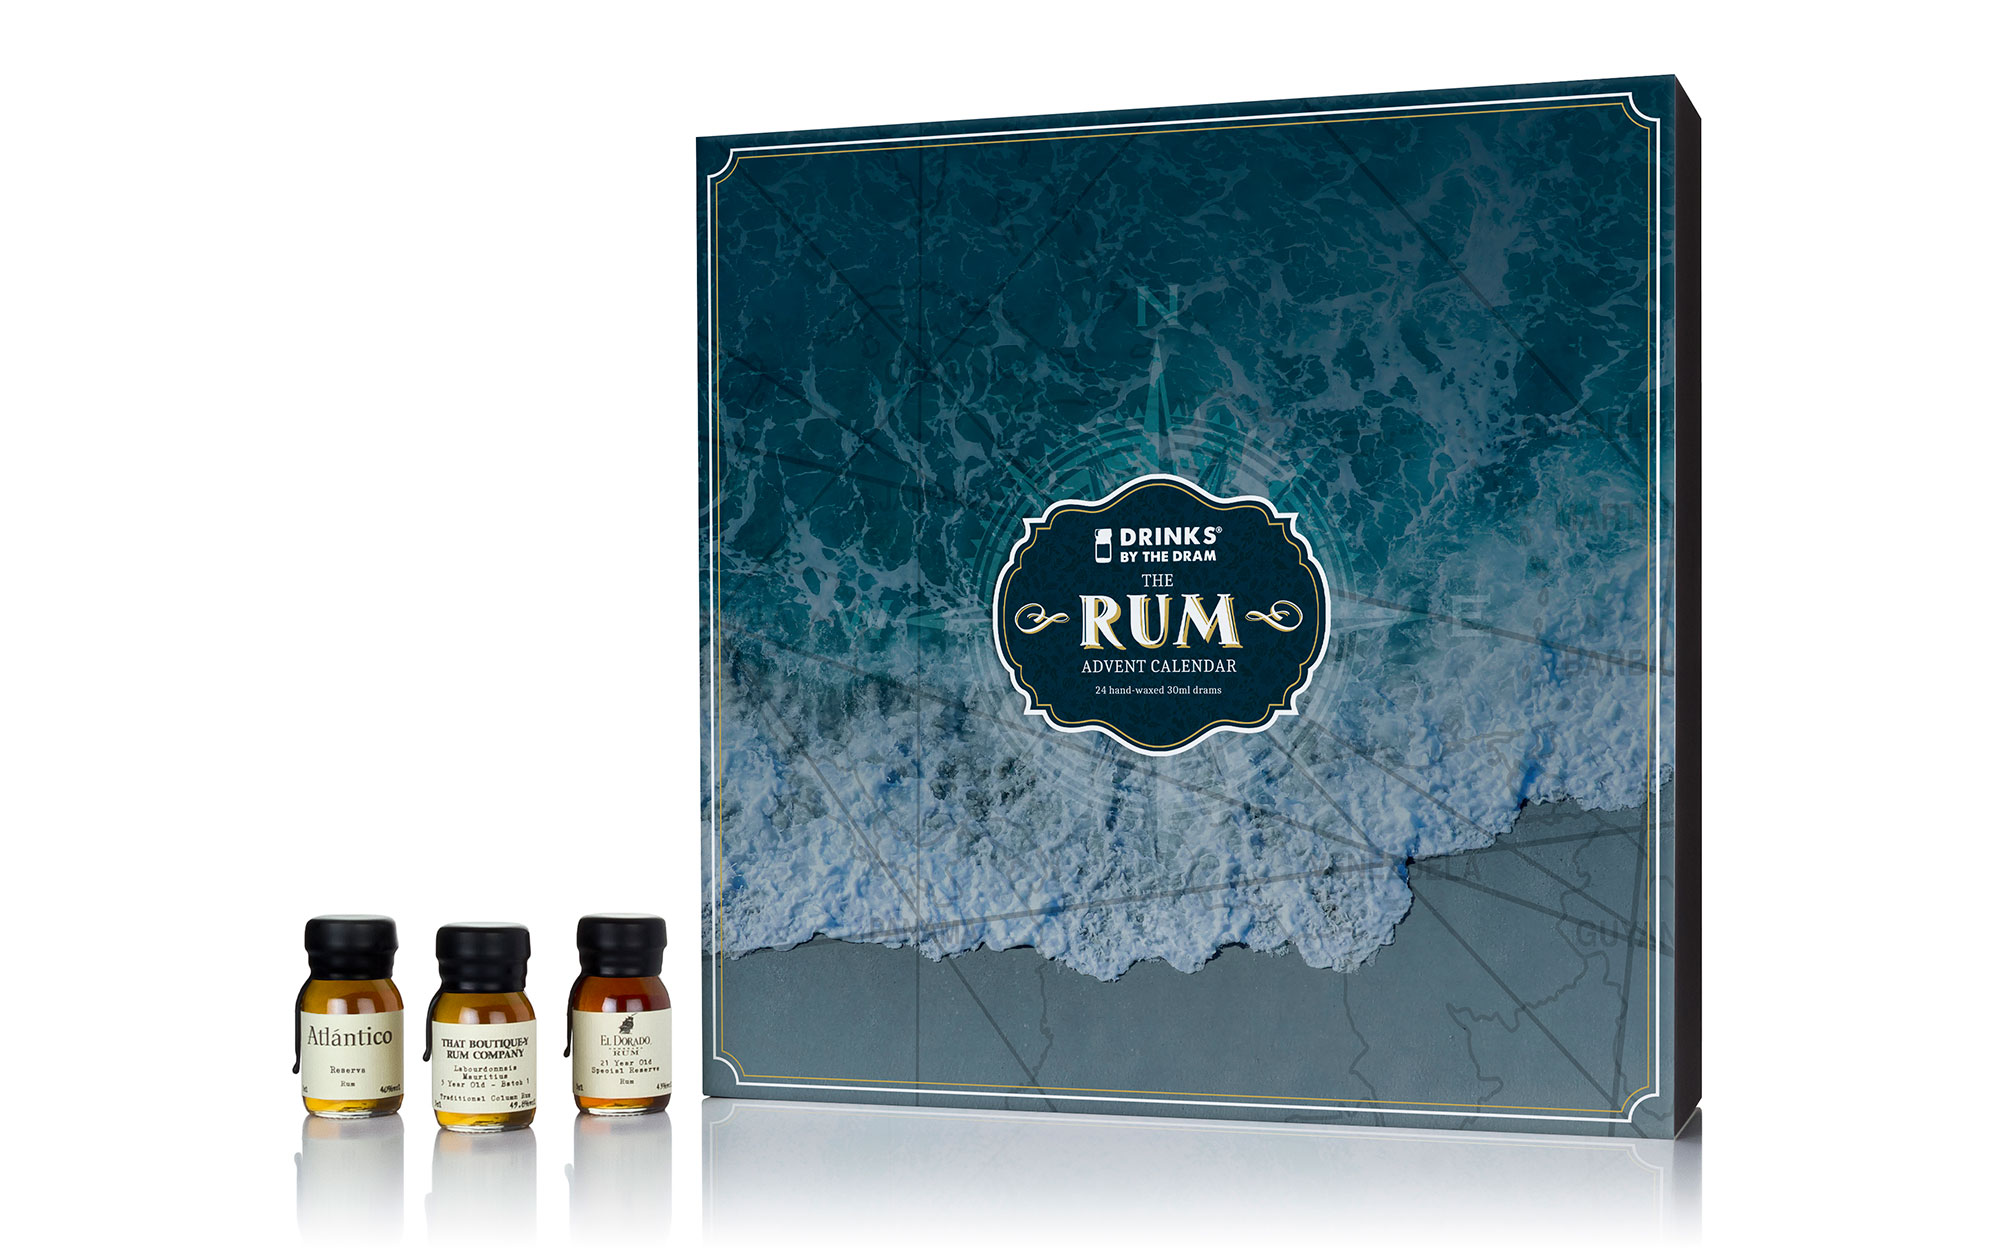 The Rum Advent Calendar